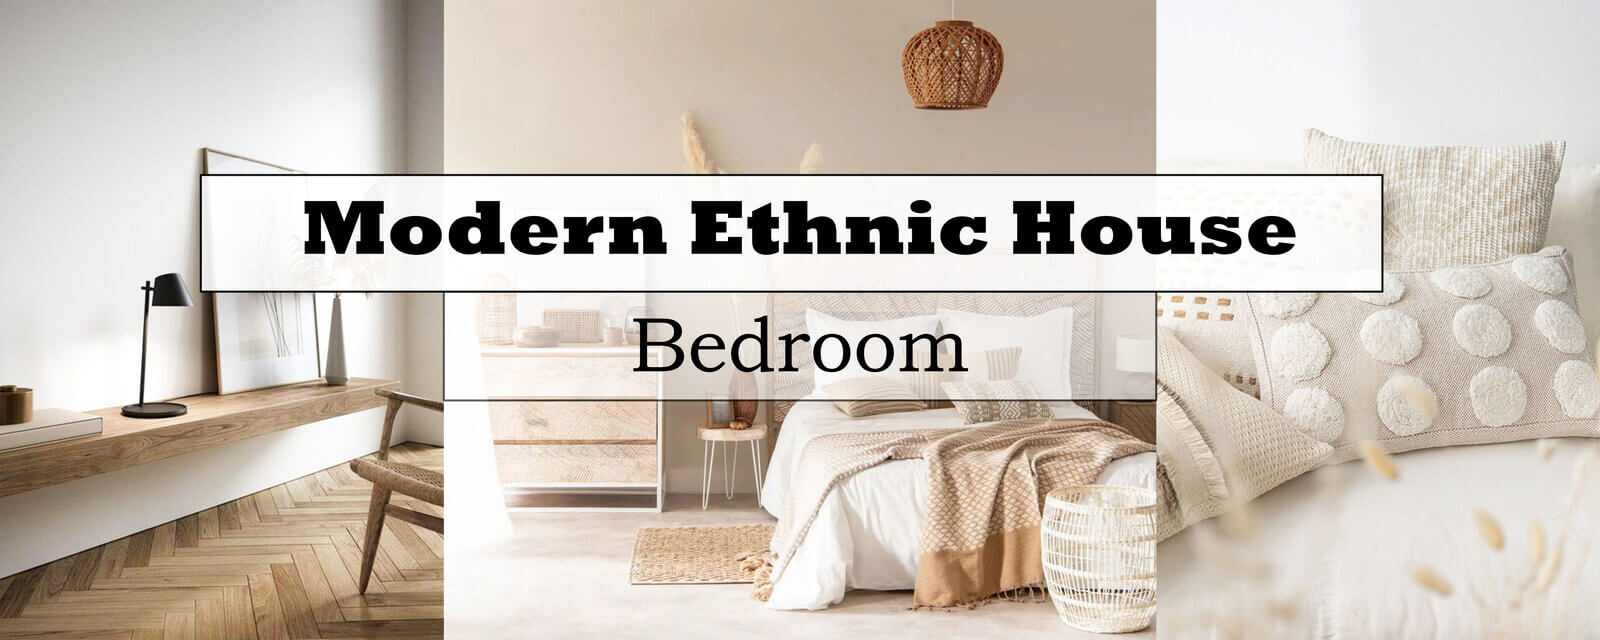 Modern Ethnic House | Bedroom